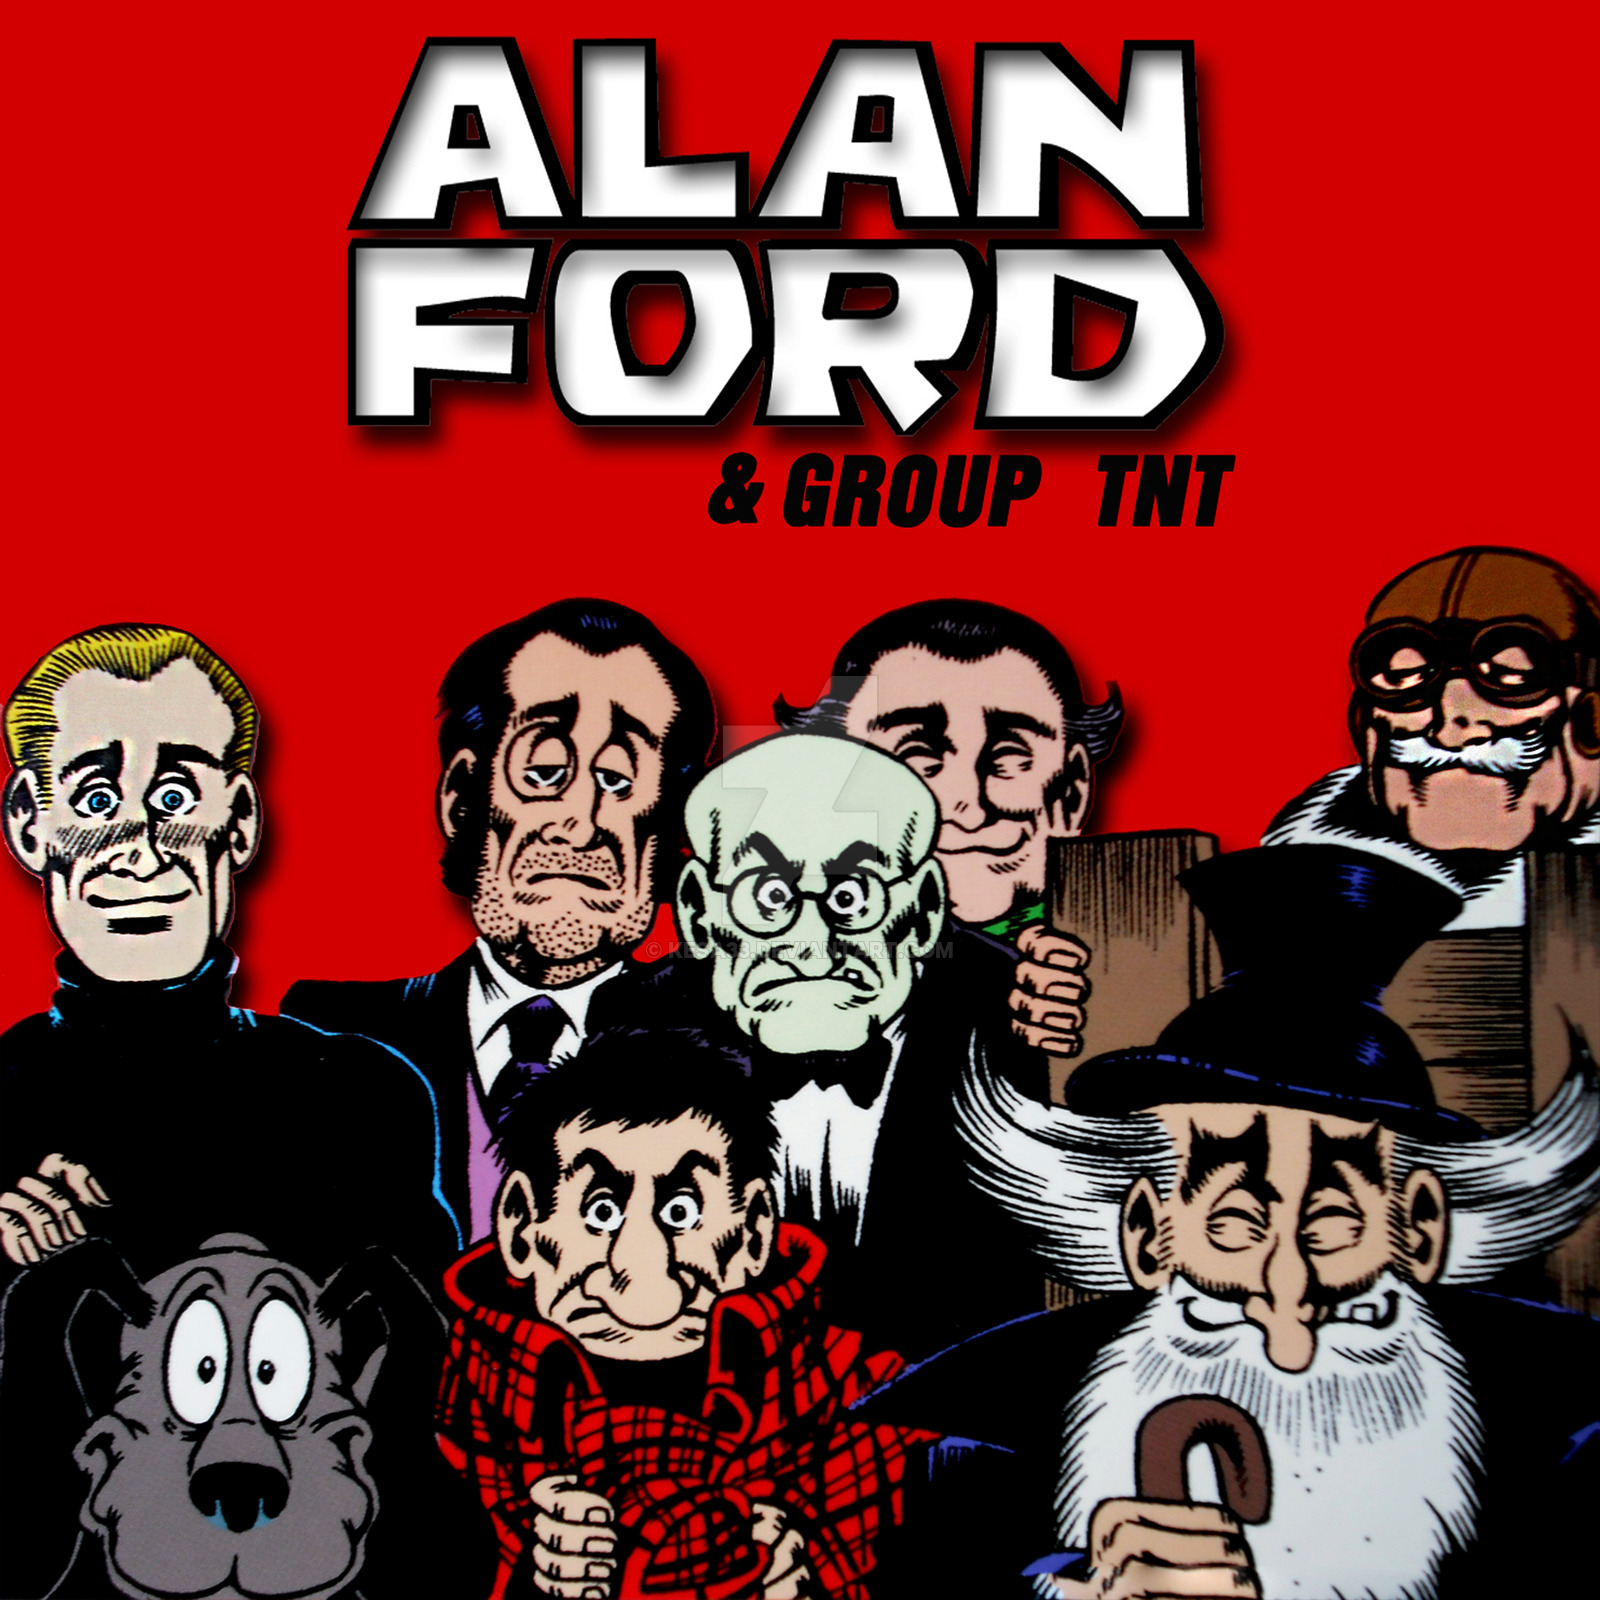 Alan Ford Wallpaper